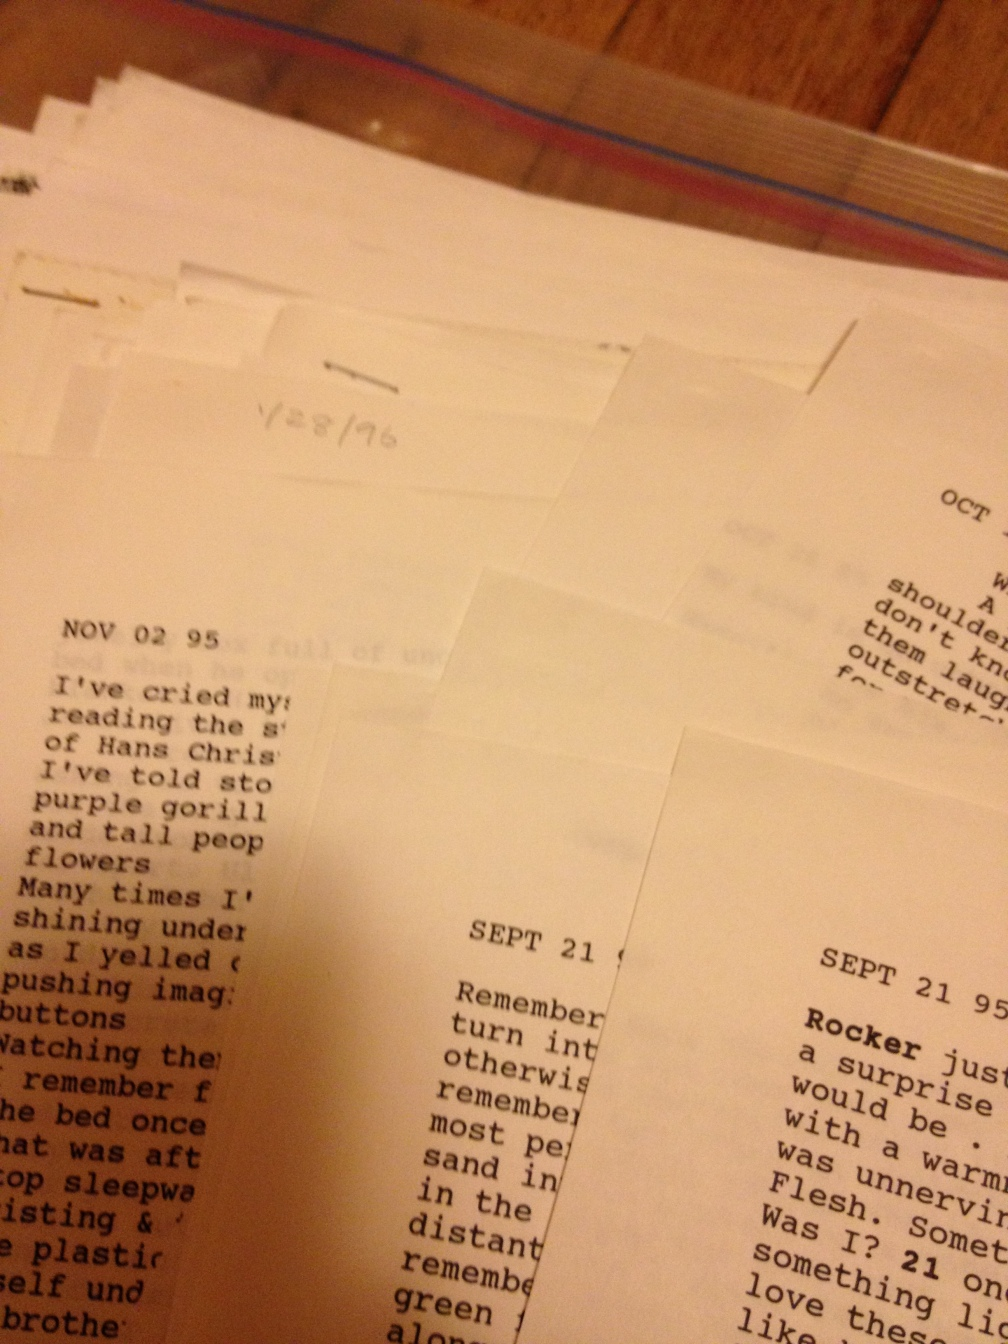 My old drafts, yellowing away in a box